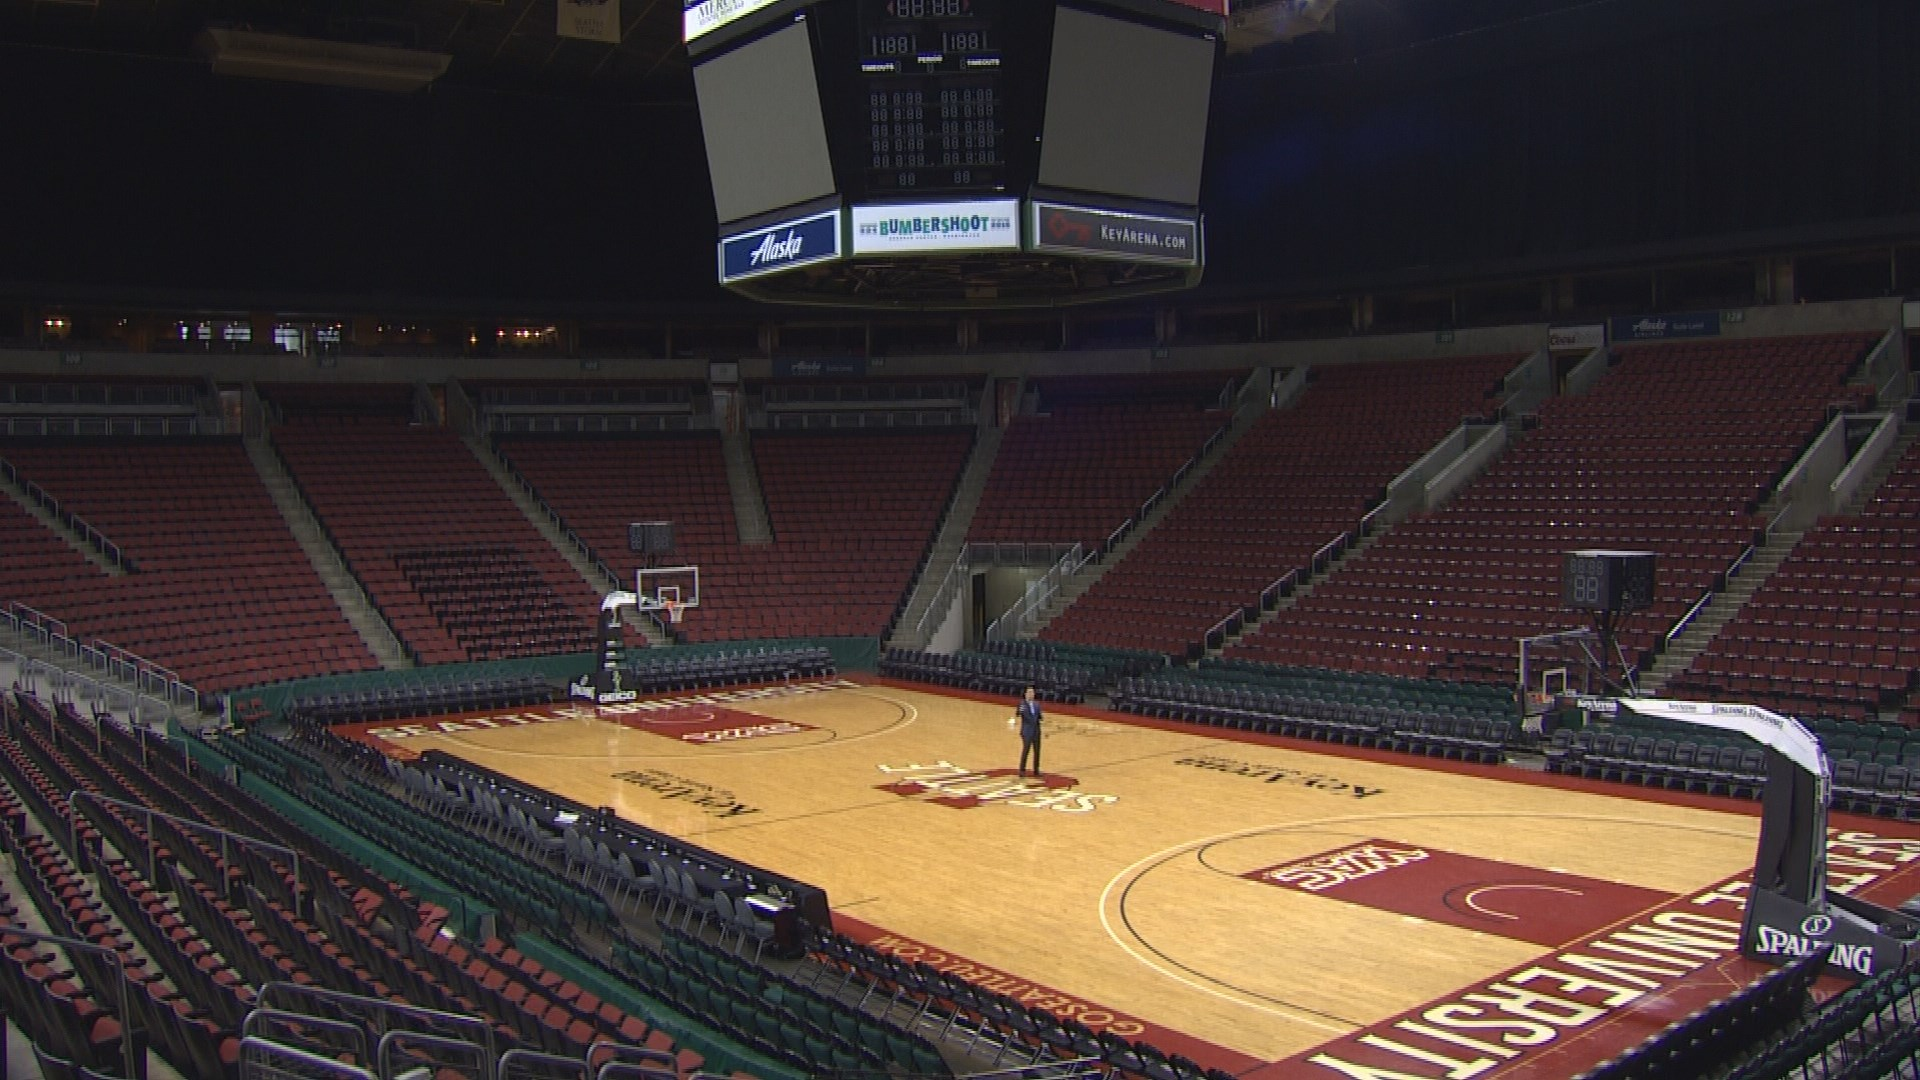 king5.com | KeyArena tour generates buzz on the outside